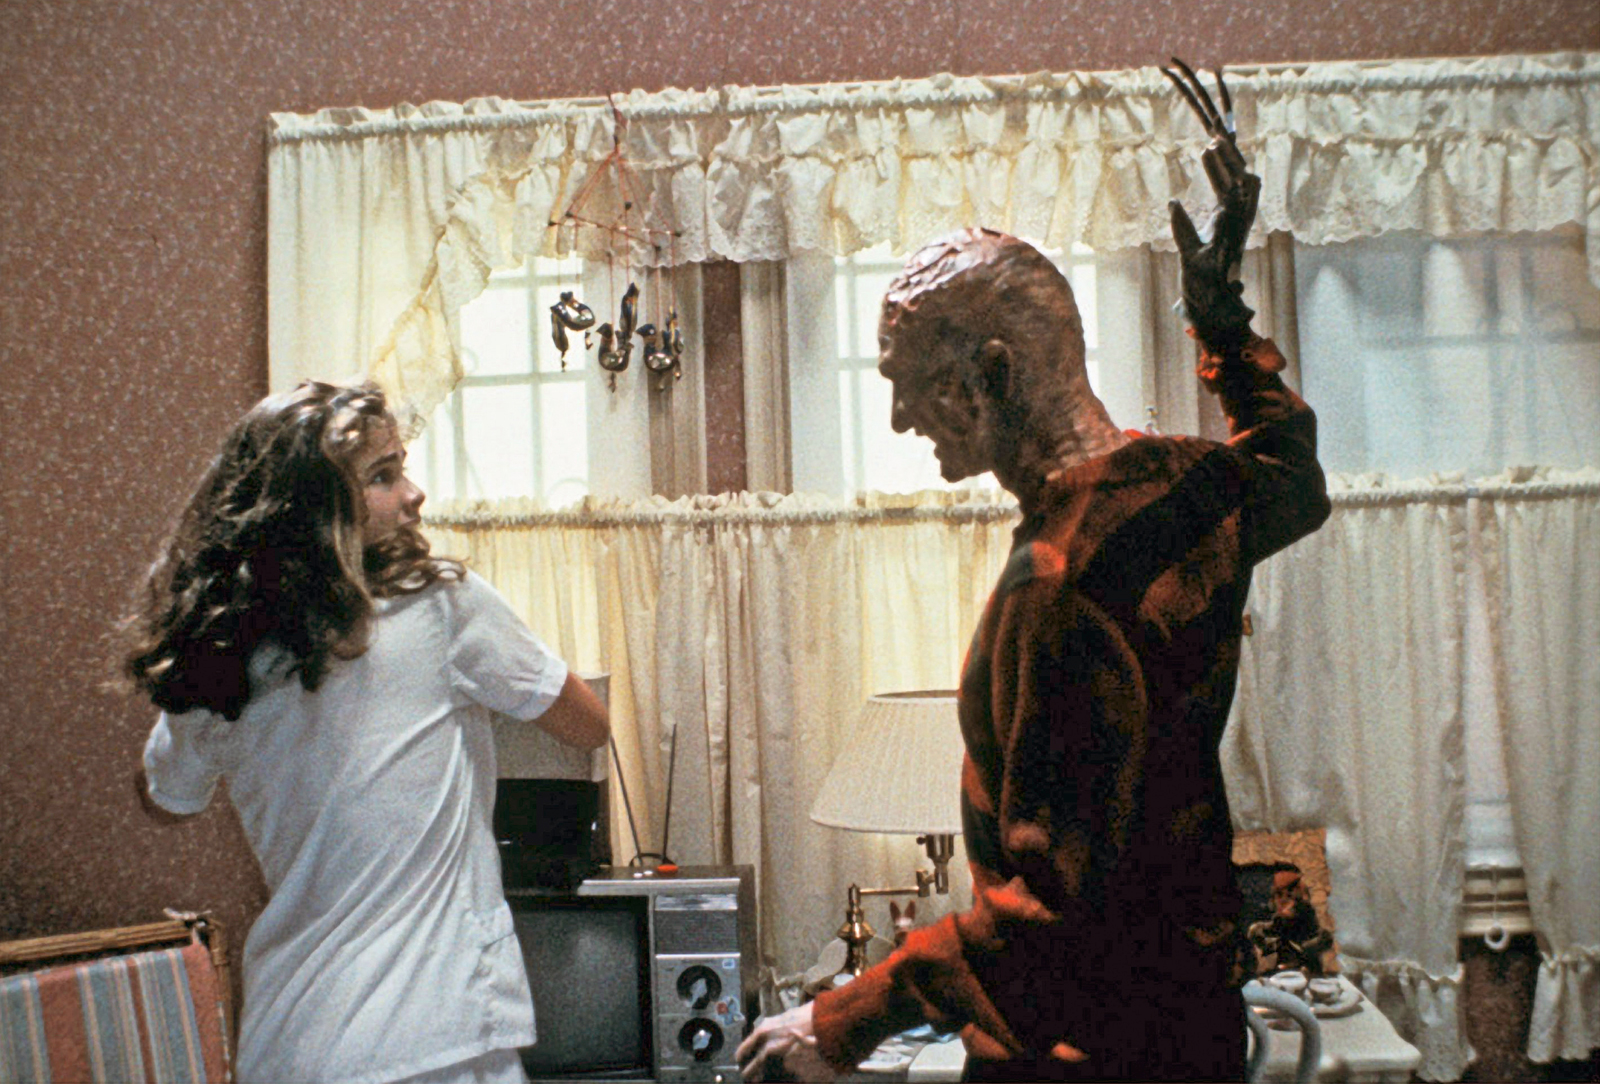 Heather Langenkamp Robert Englund A Nightmare on A Nightmare On Elm Street Is Based On A True Story, And More You Never Knew About The Film